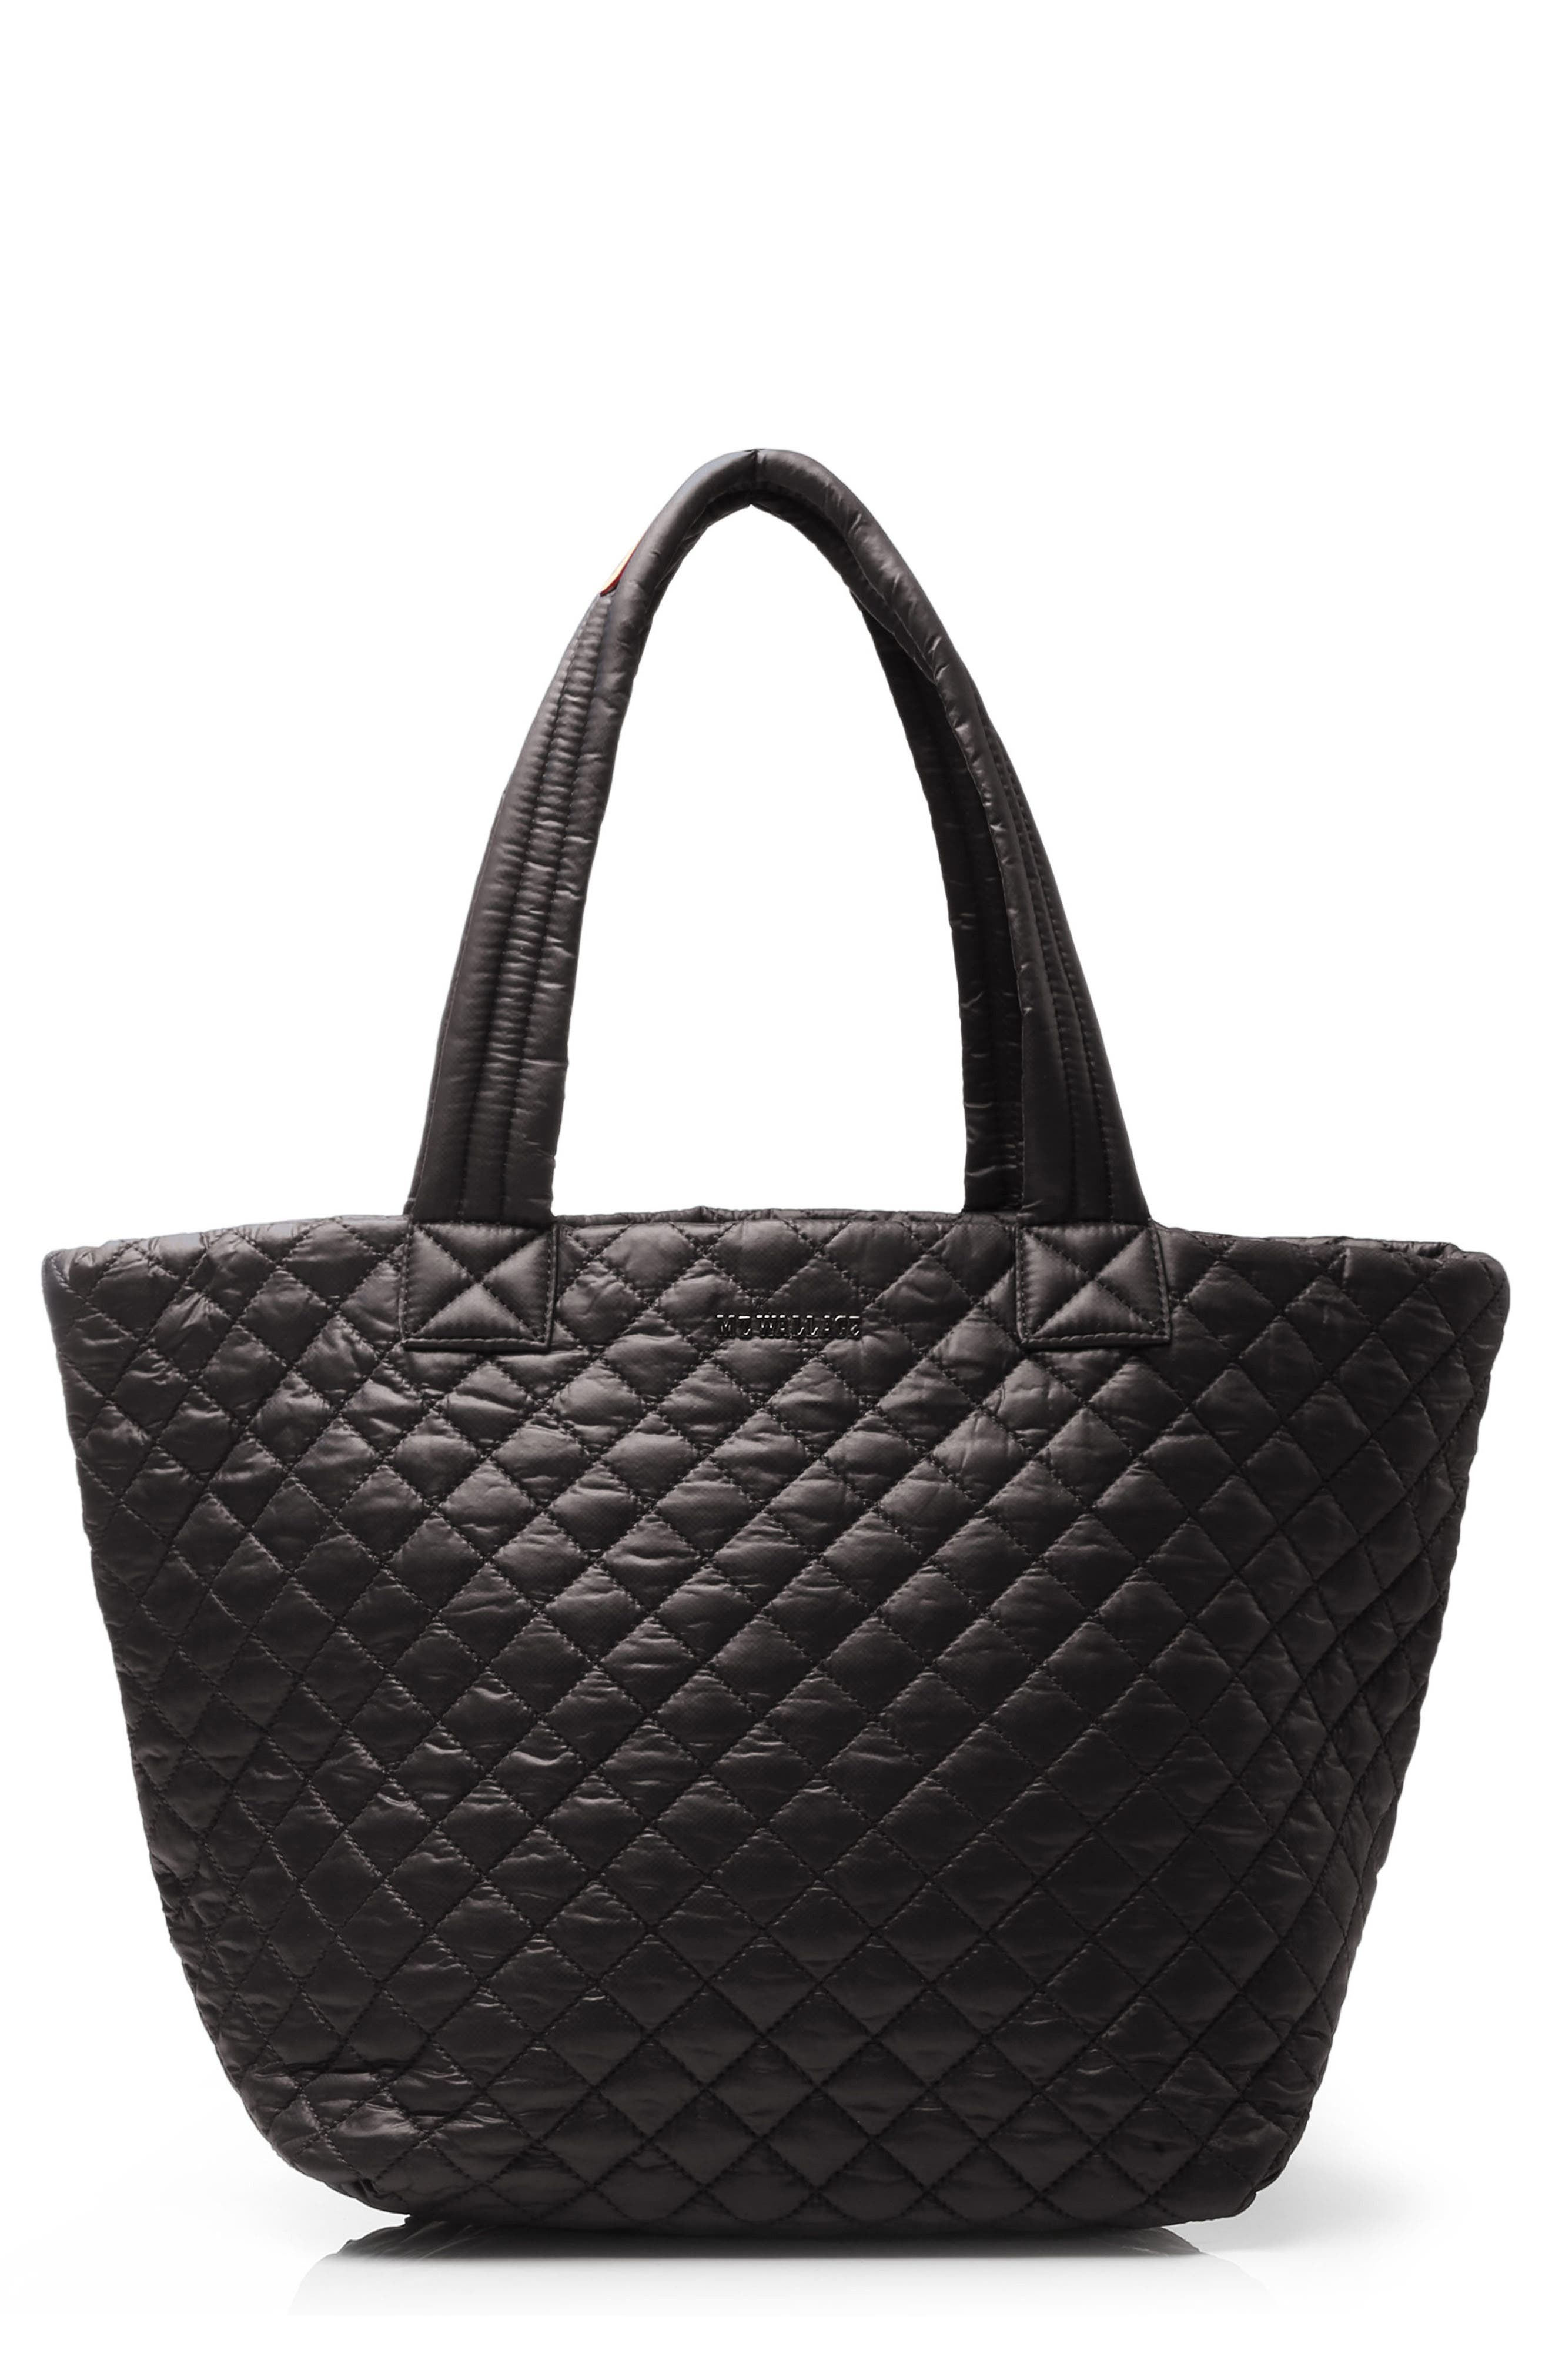 MZ WALLACE Medium Metro Quilted Oxford Nylon Tote